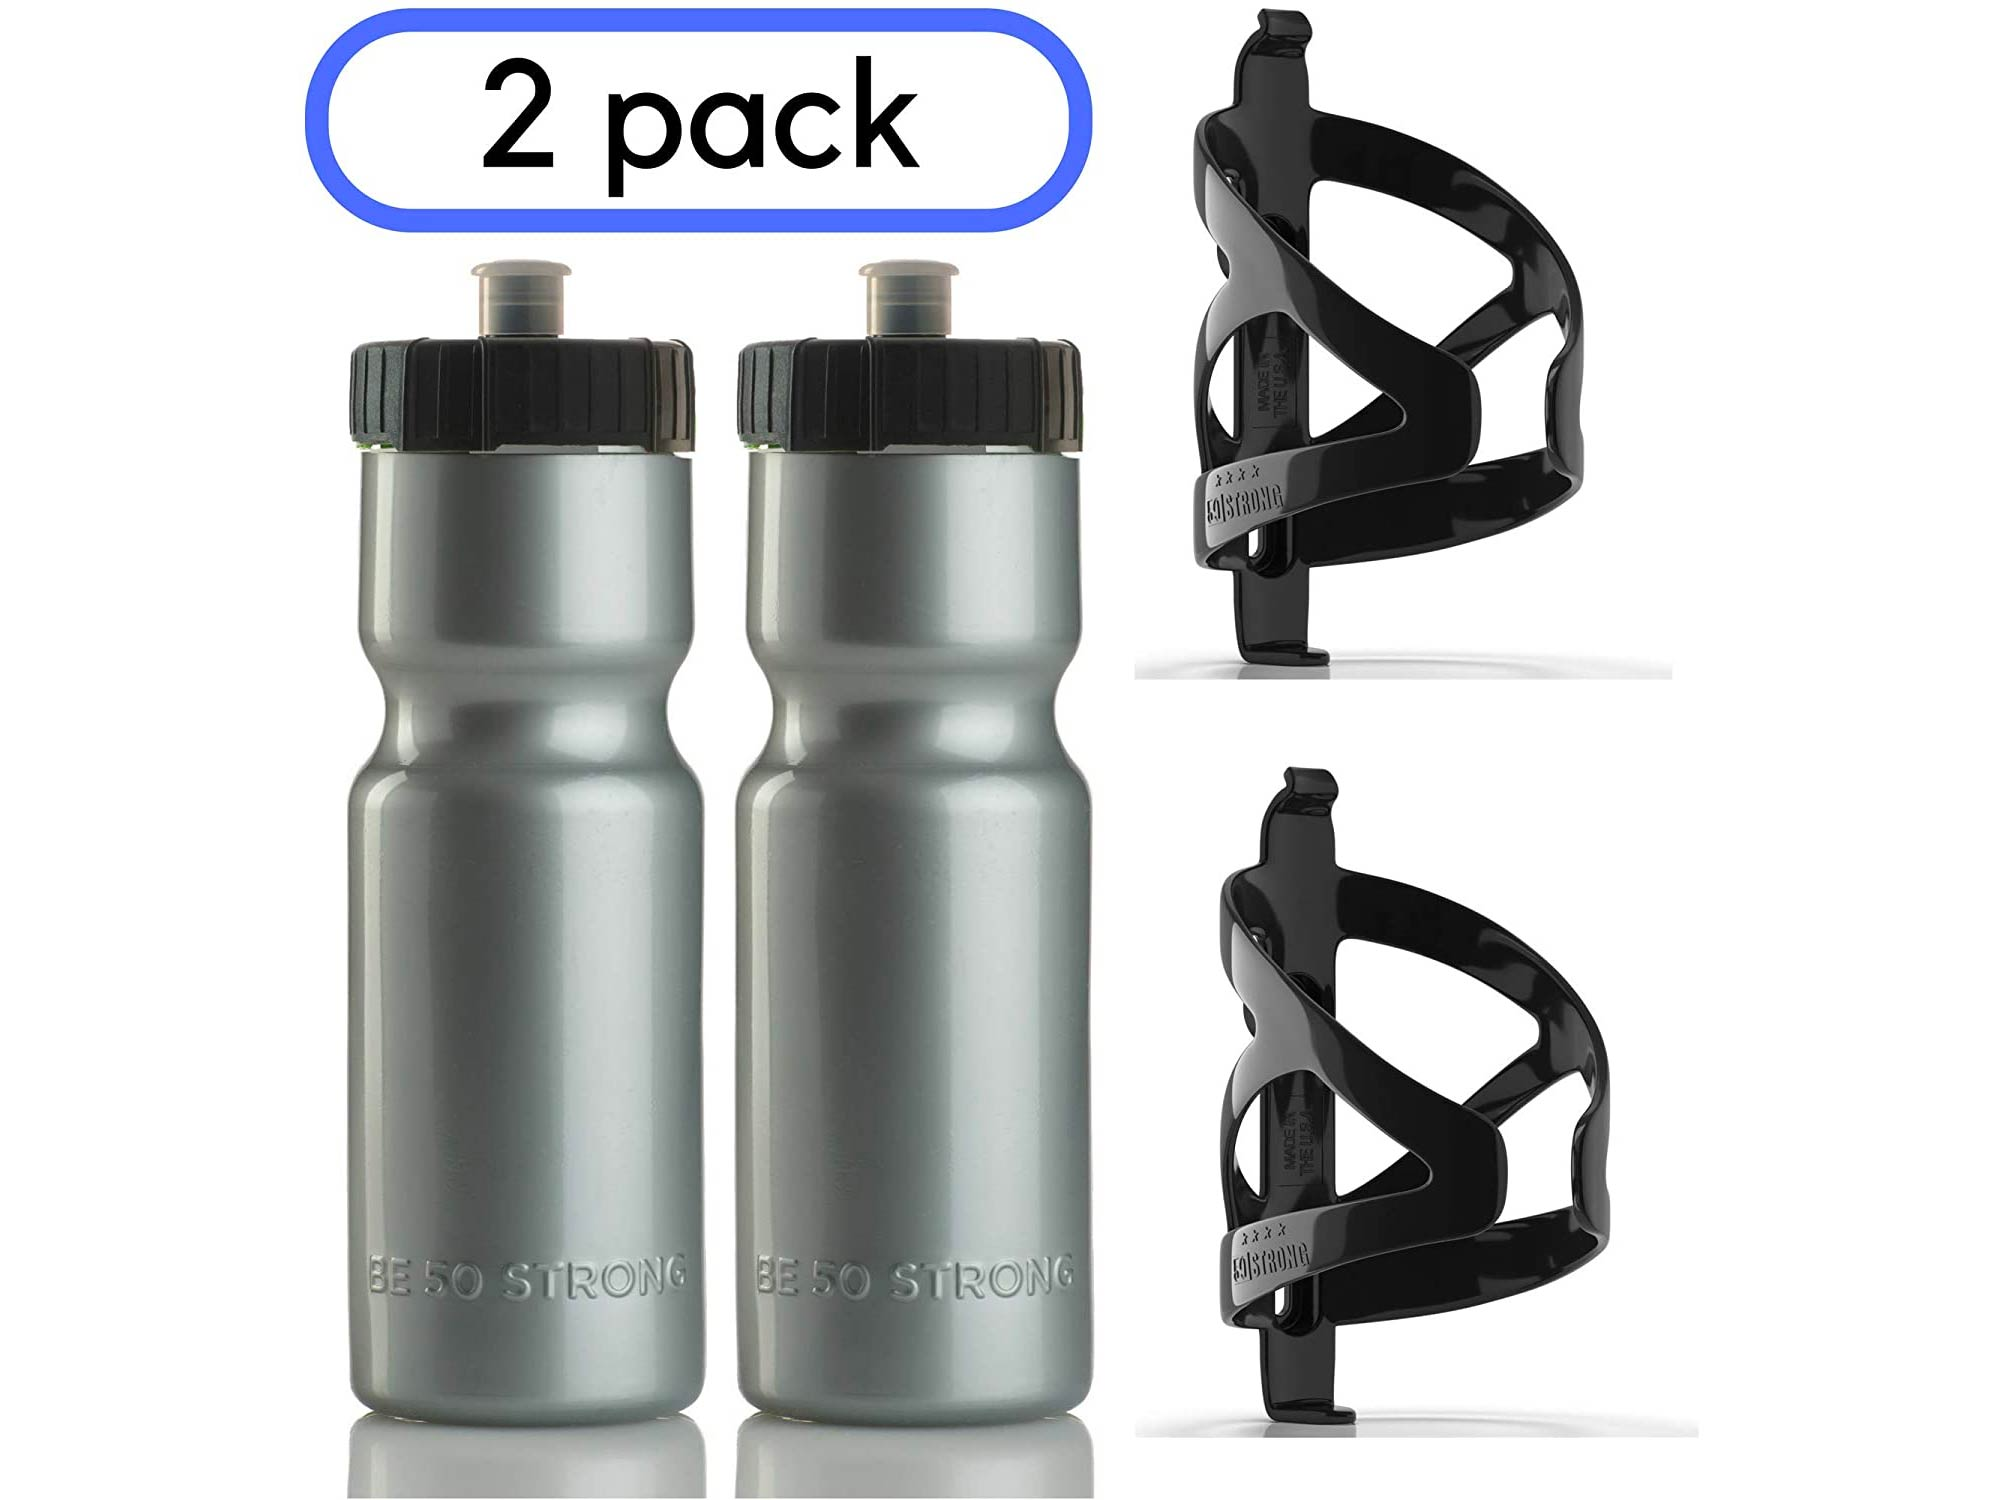 50 Strong Bike Bottle Holder with Water Bottle - 2 Pack - 22 oz. BPA Free Bicycle Squeeze Bottle and Durable Plastic Holder Cage- Made in USA